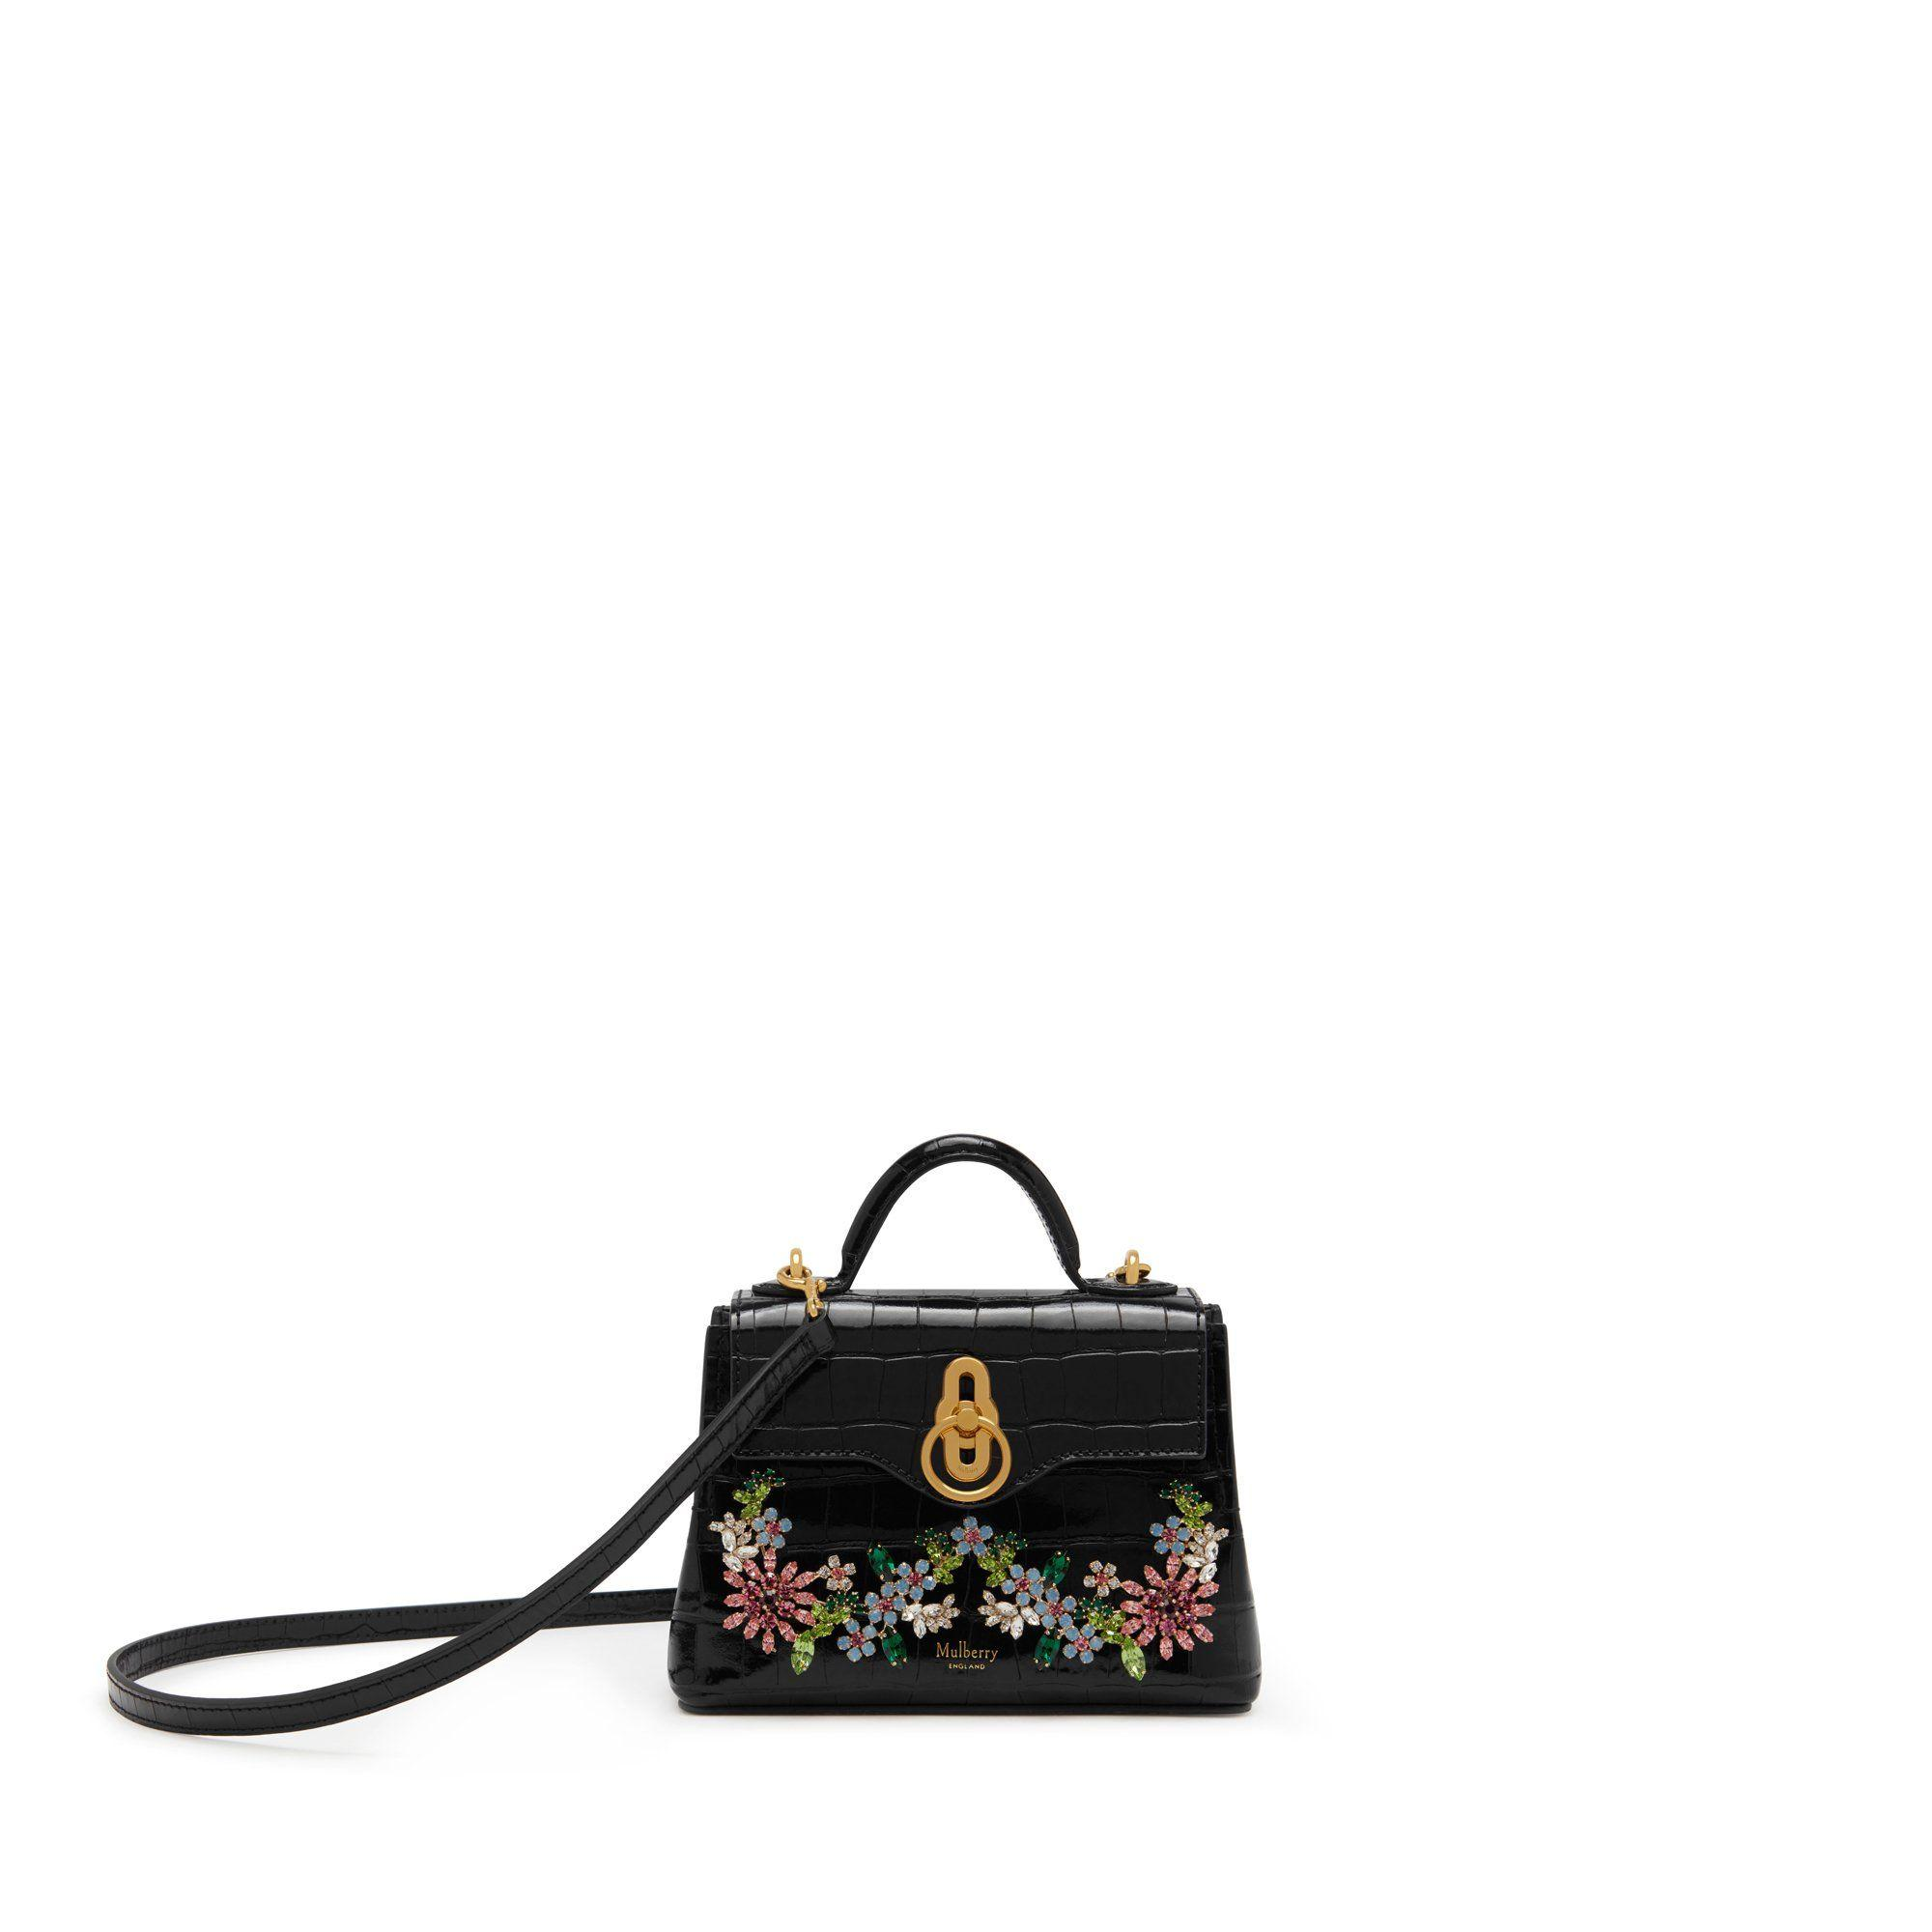 Mulberry - Micro Seaton In Black Croc Print With Flower Crystals - Lyst.  View fullscreen 1e8b7948c0d64